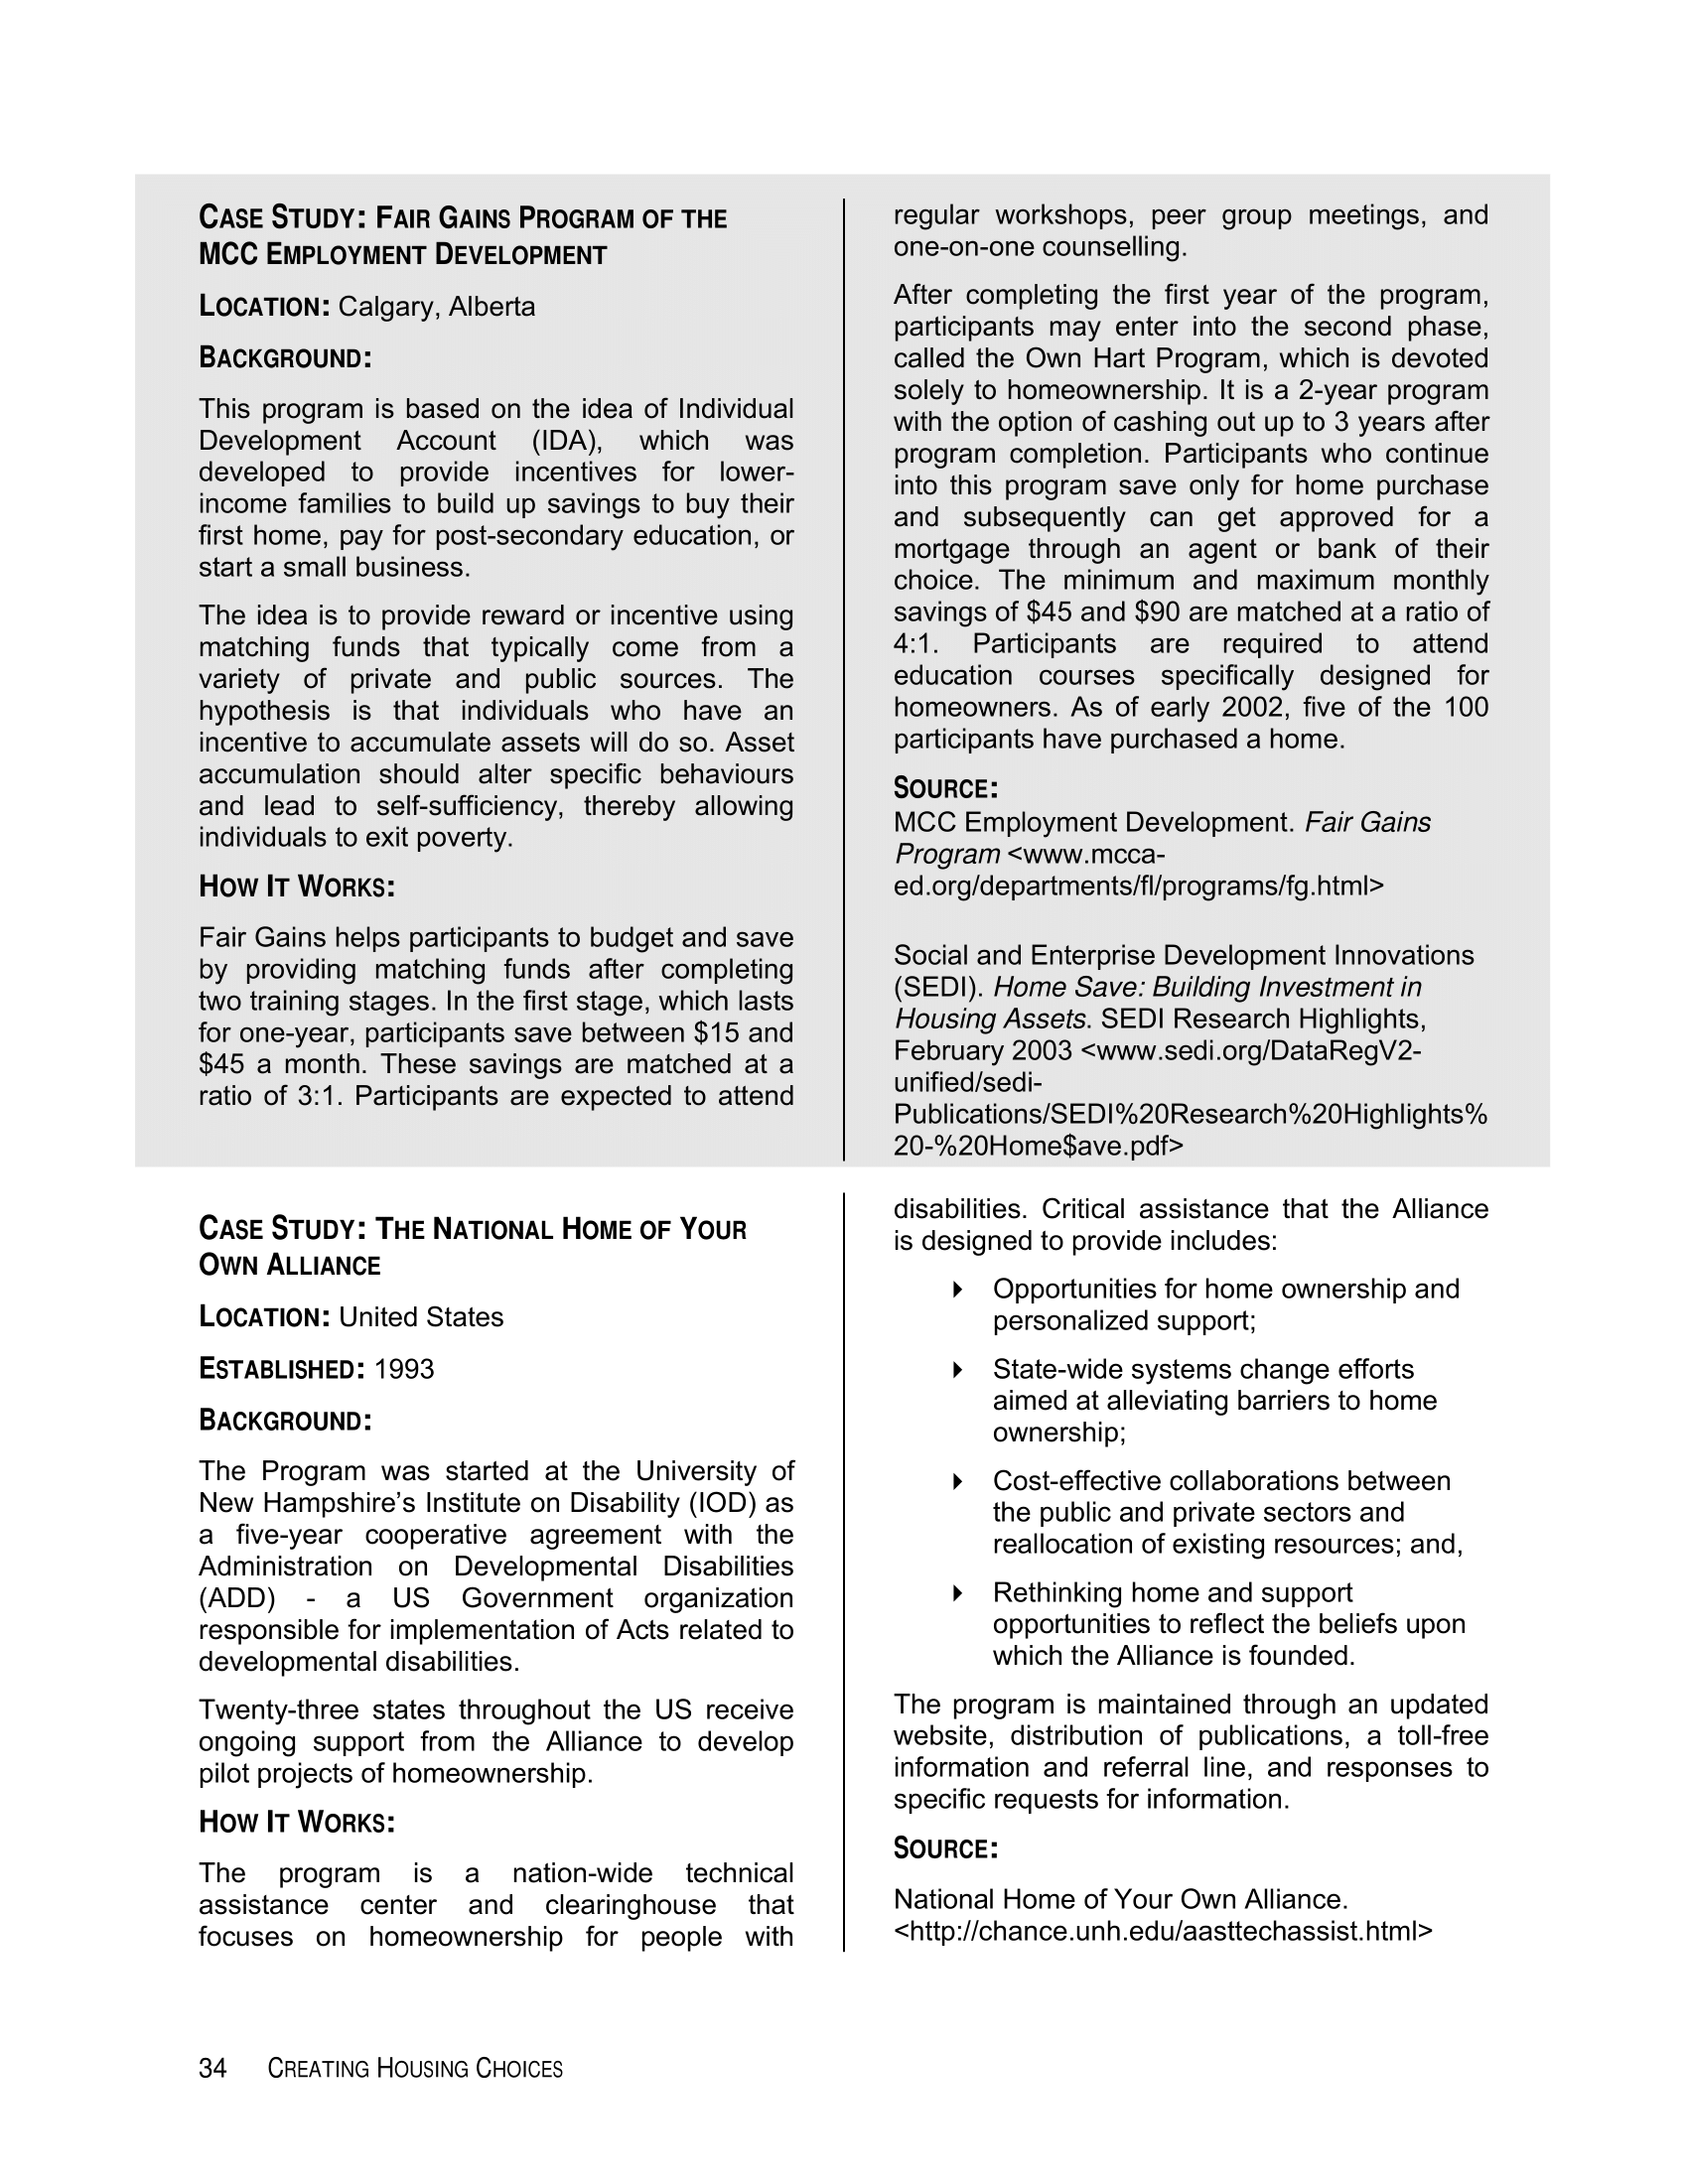 Creating Housing Choices - 2006-35.png